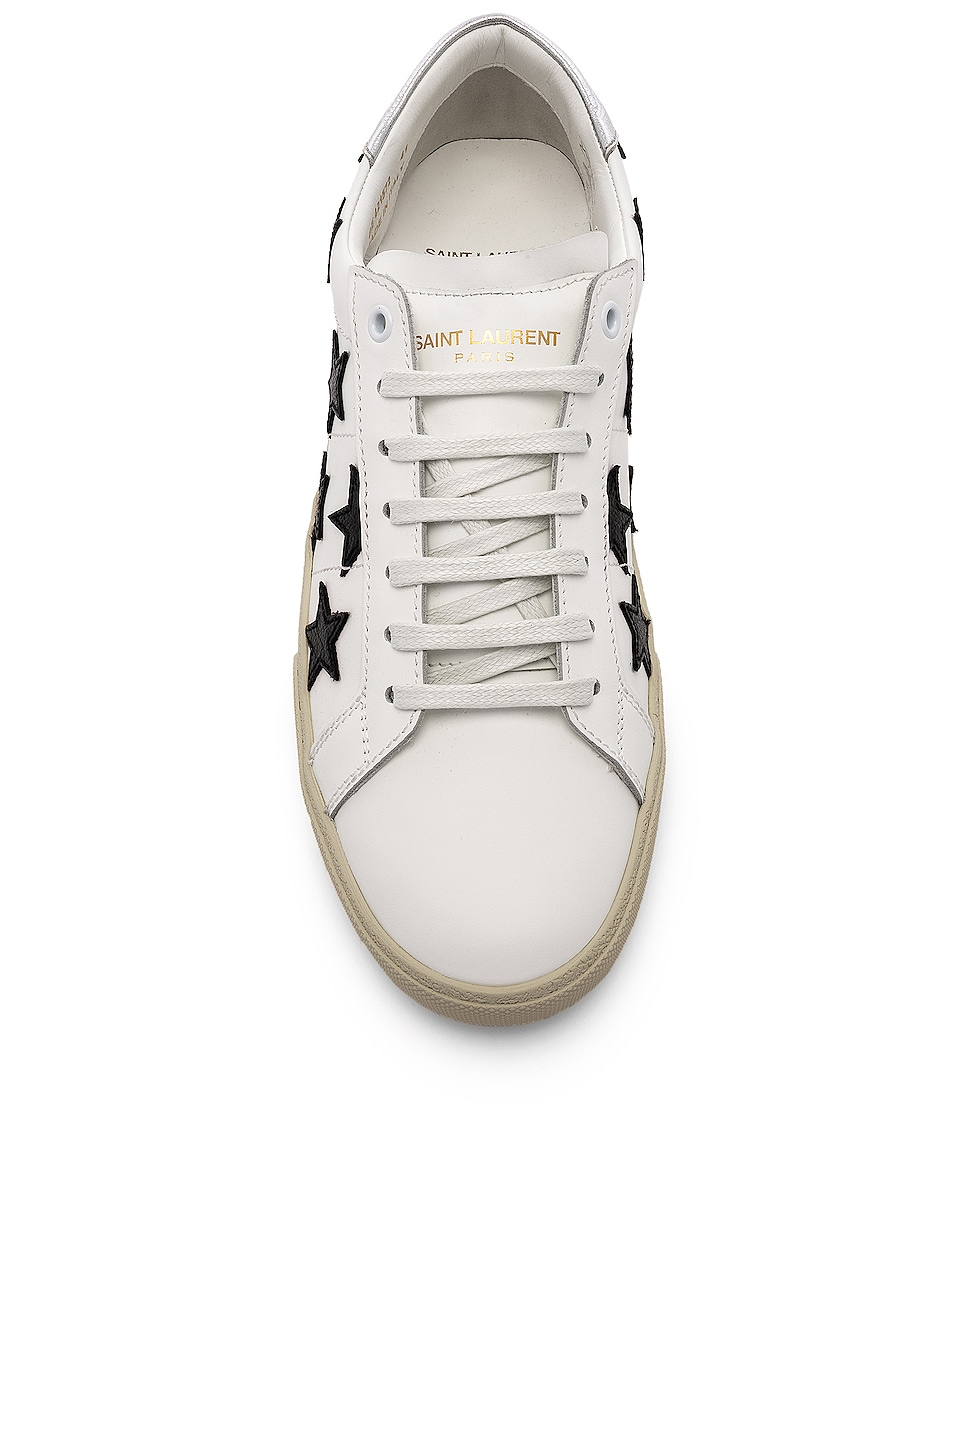 Image 4 of Saint Laurent Leather SL/06 Low-Top Star Sneakers in Optic White & Black & Silver